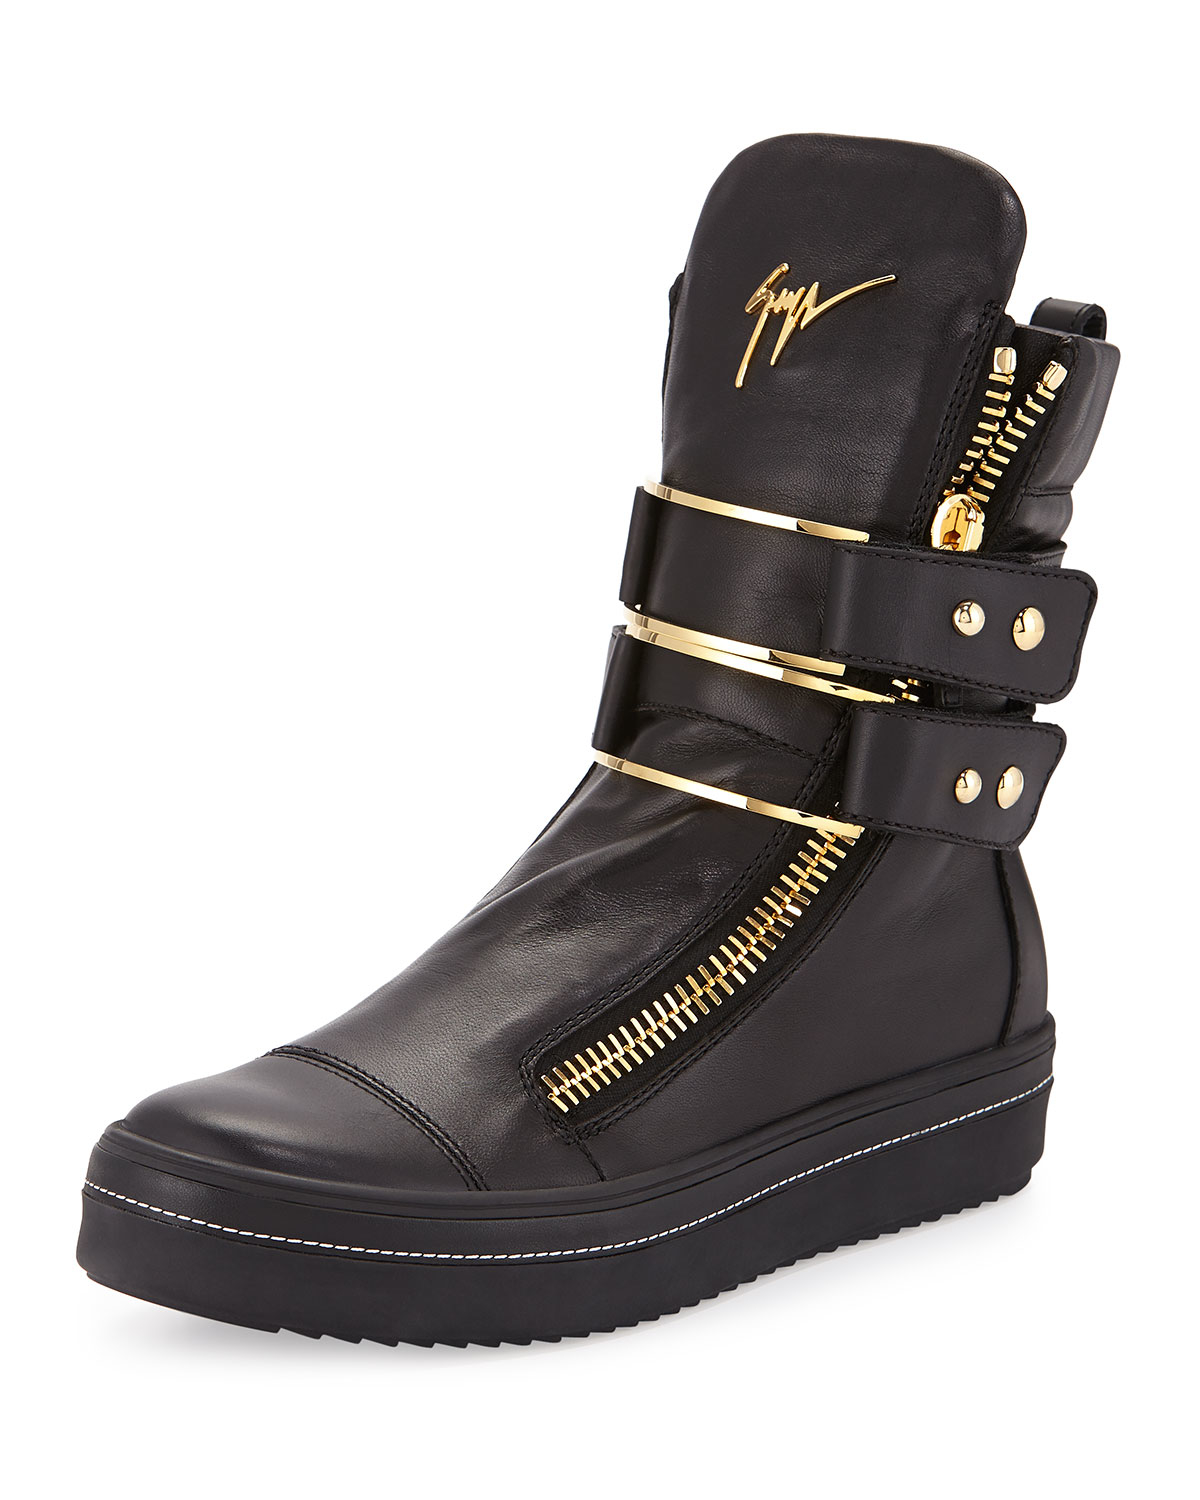 Giuseppe Zanotti Kurt Leather High Top Buckled Sneakers In